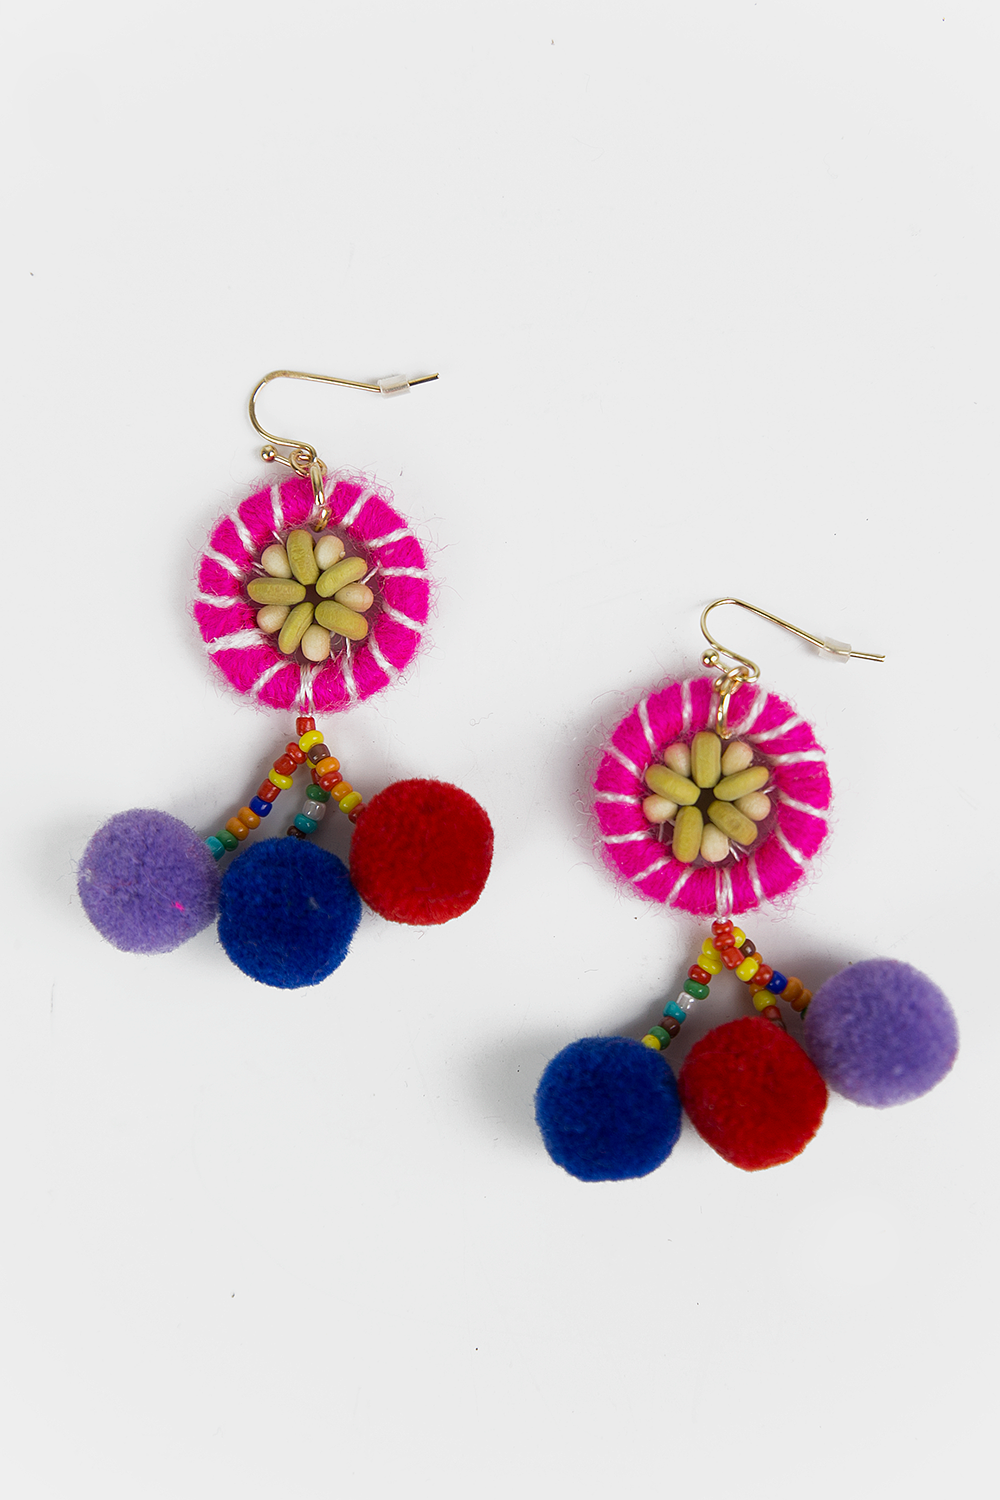 Felt Pom Pom Fiesta Earrings - Haute & Rebellious